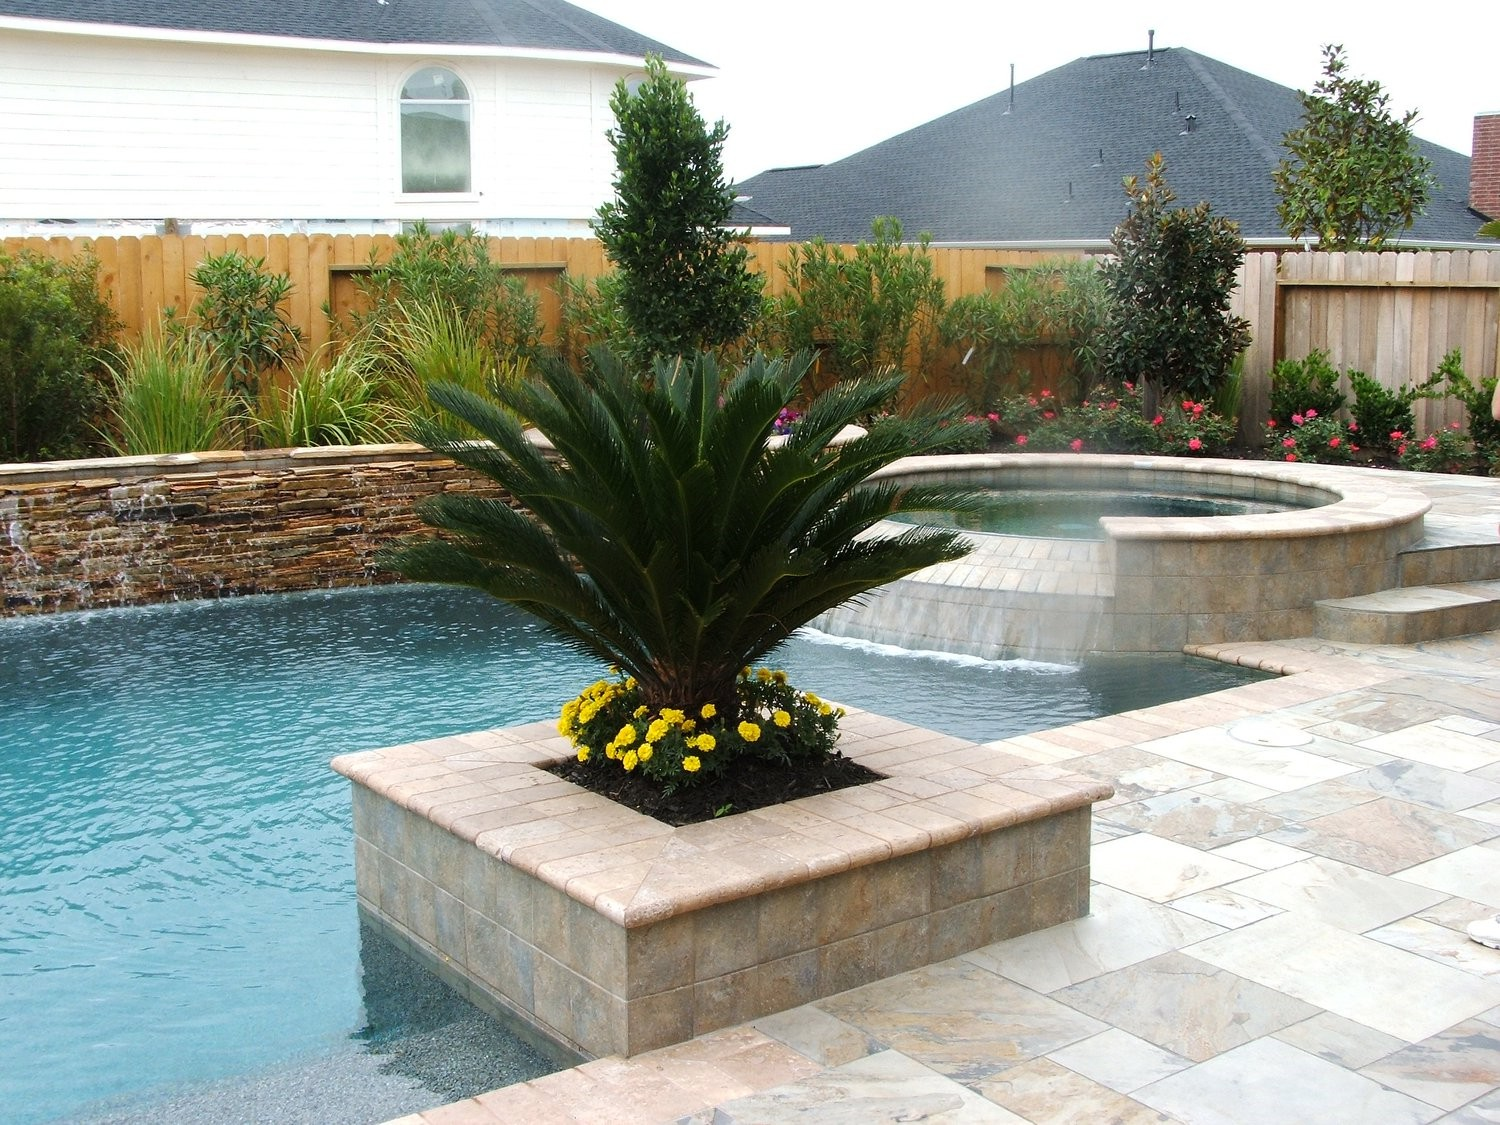 Swimming pool design cypress spring tomball katy houston for Pool design katy